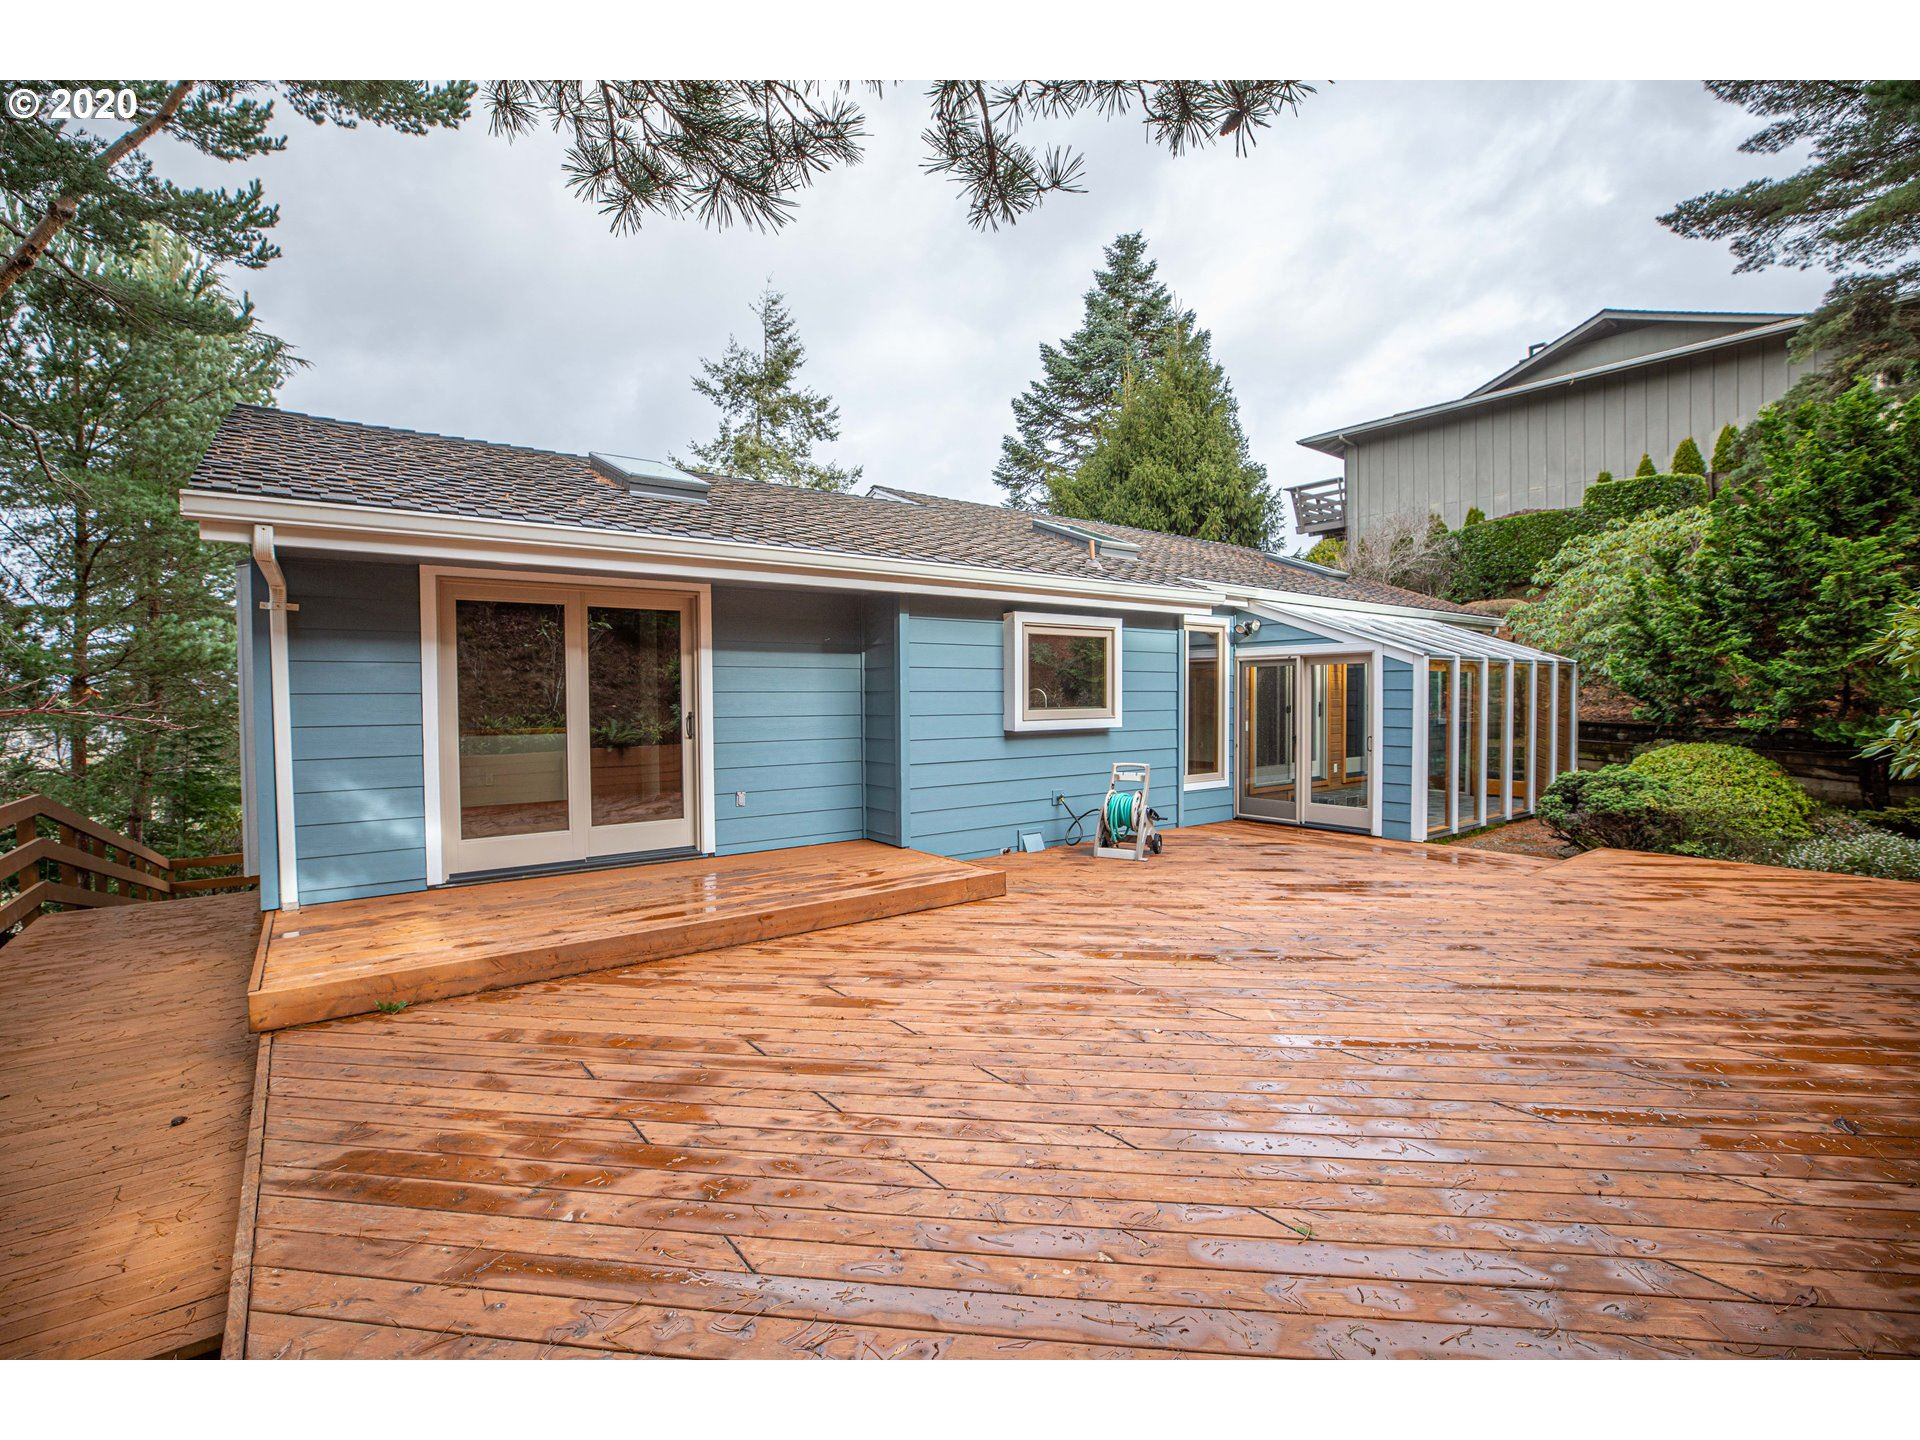 595 DATE AVE, Coos Bay, OR 97420 - MLS#: 20239955